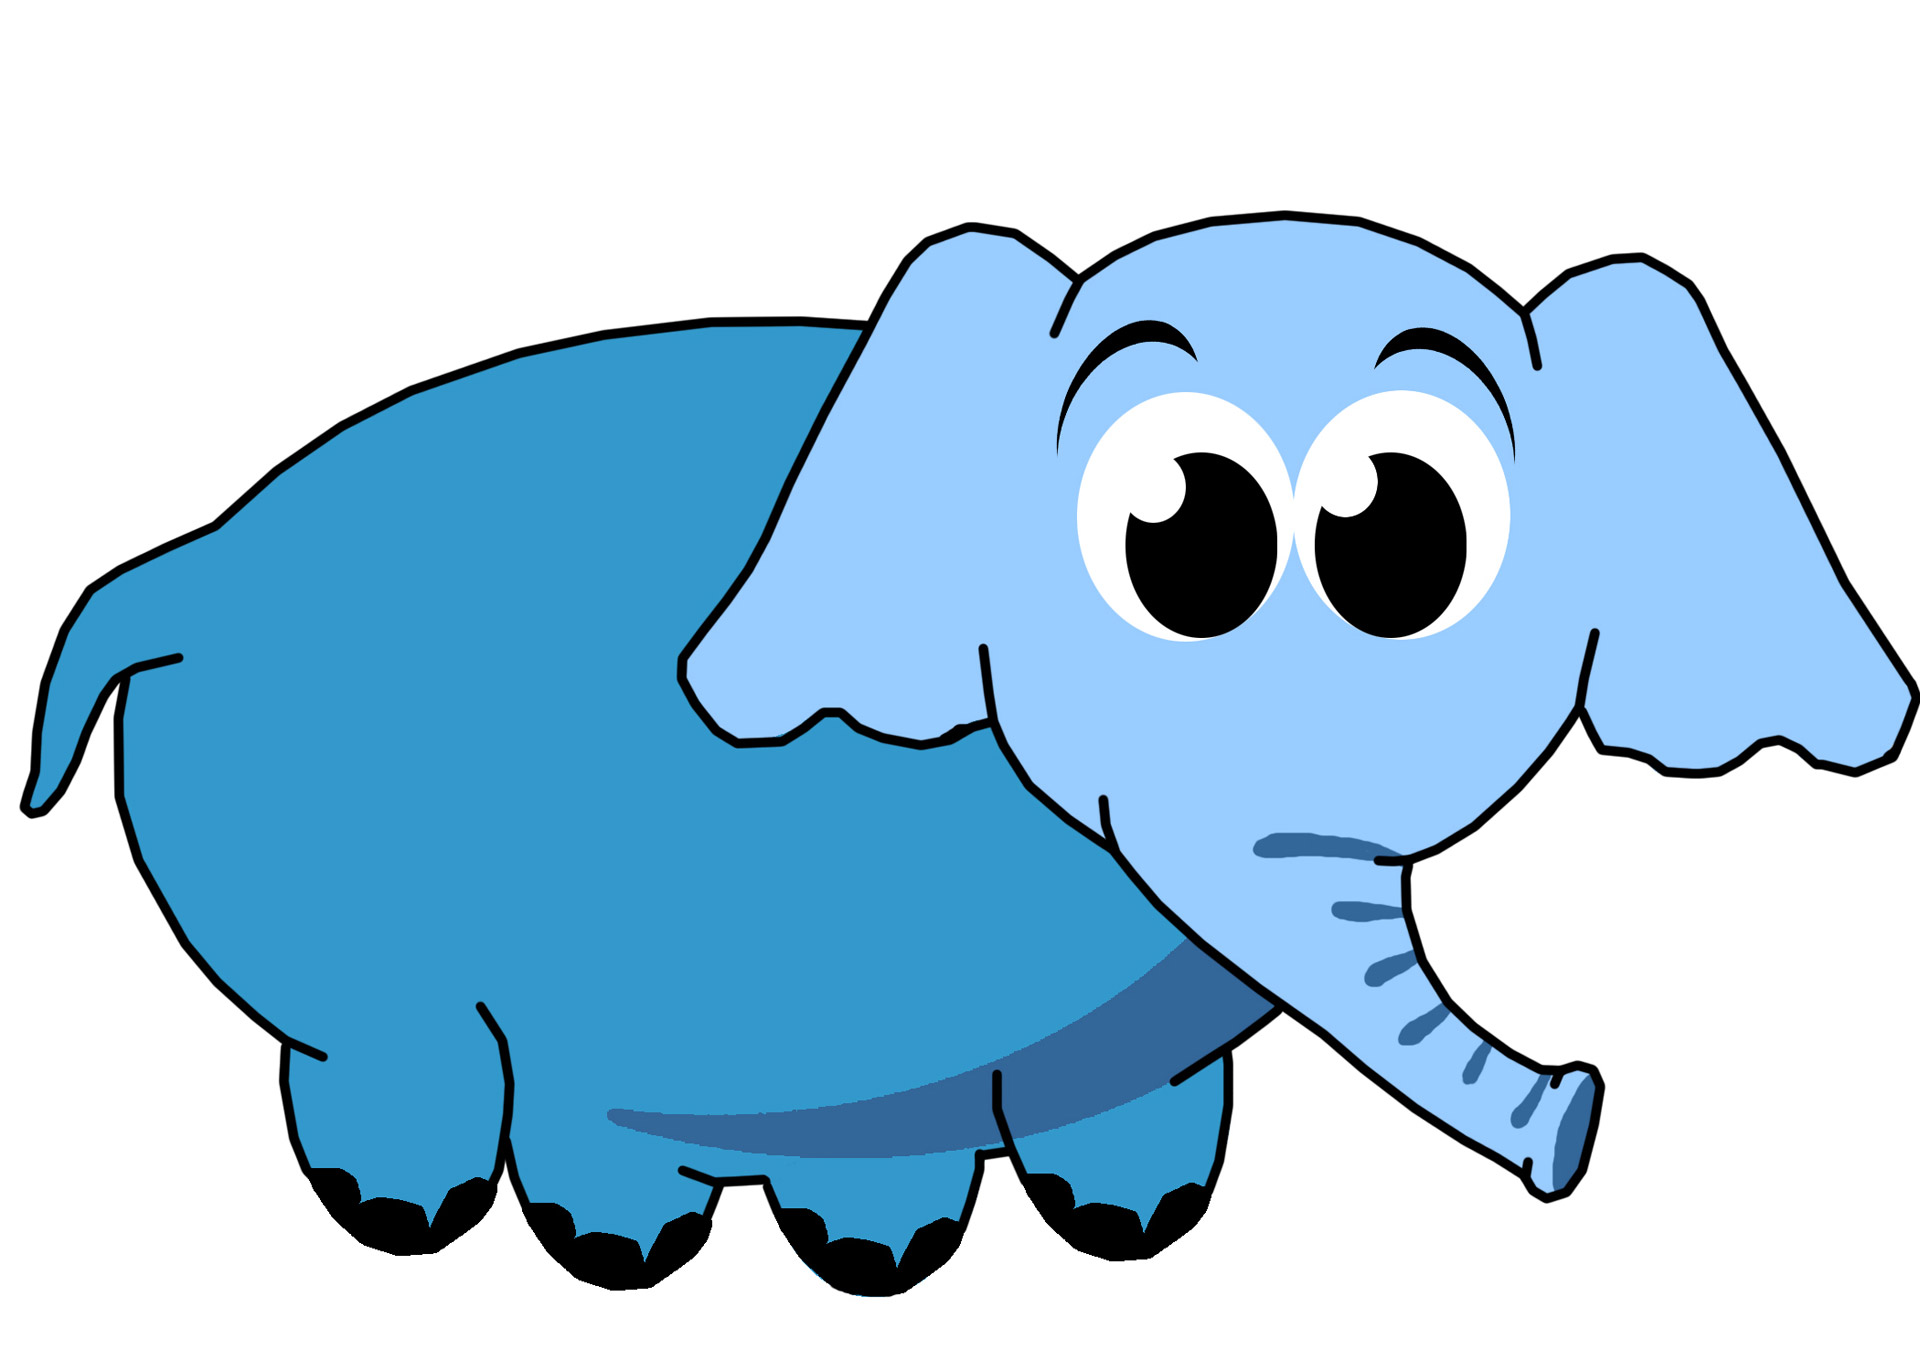 Blue Elephant Clip Art Free Stock Photo.